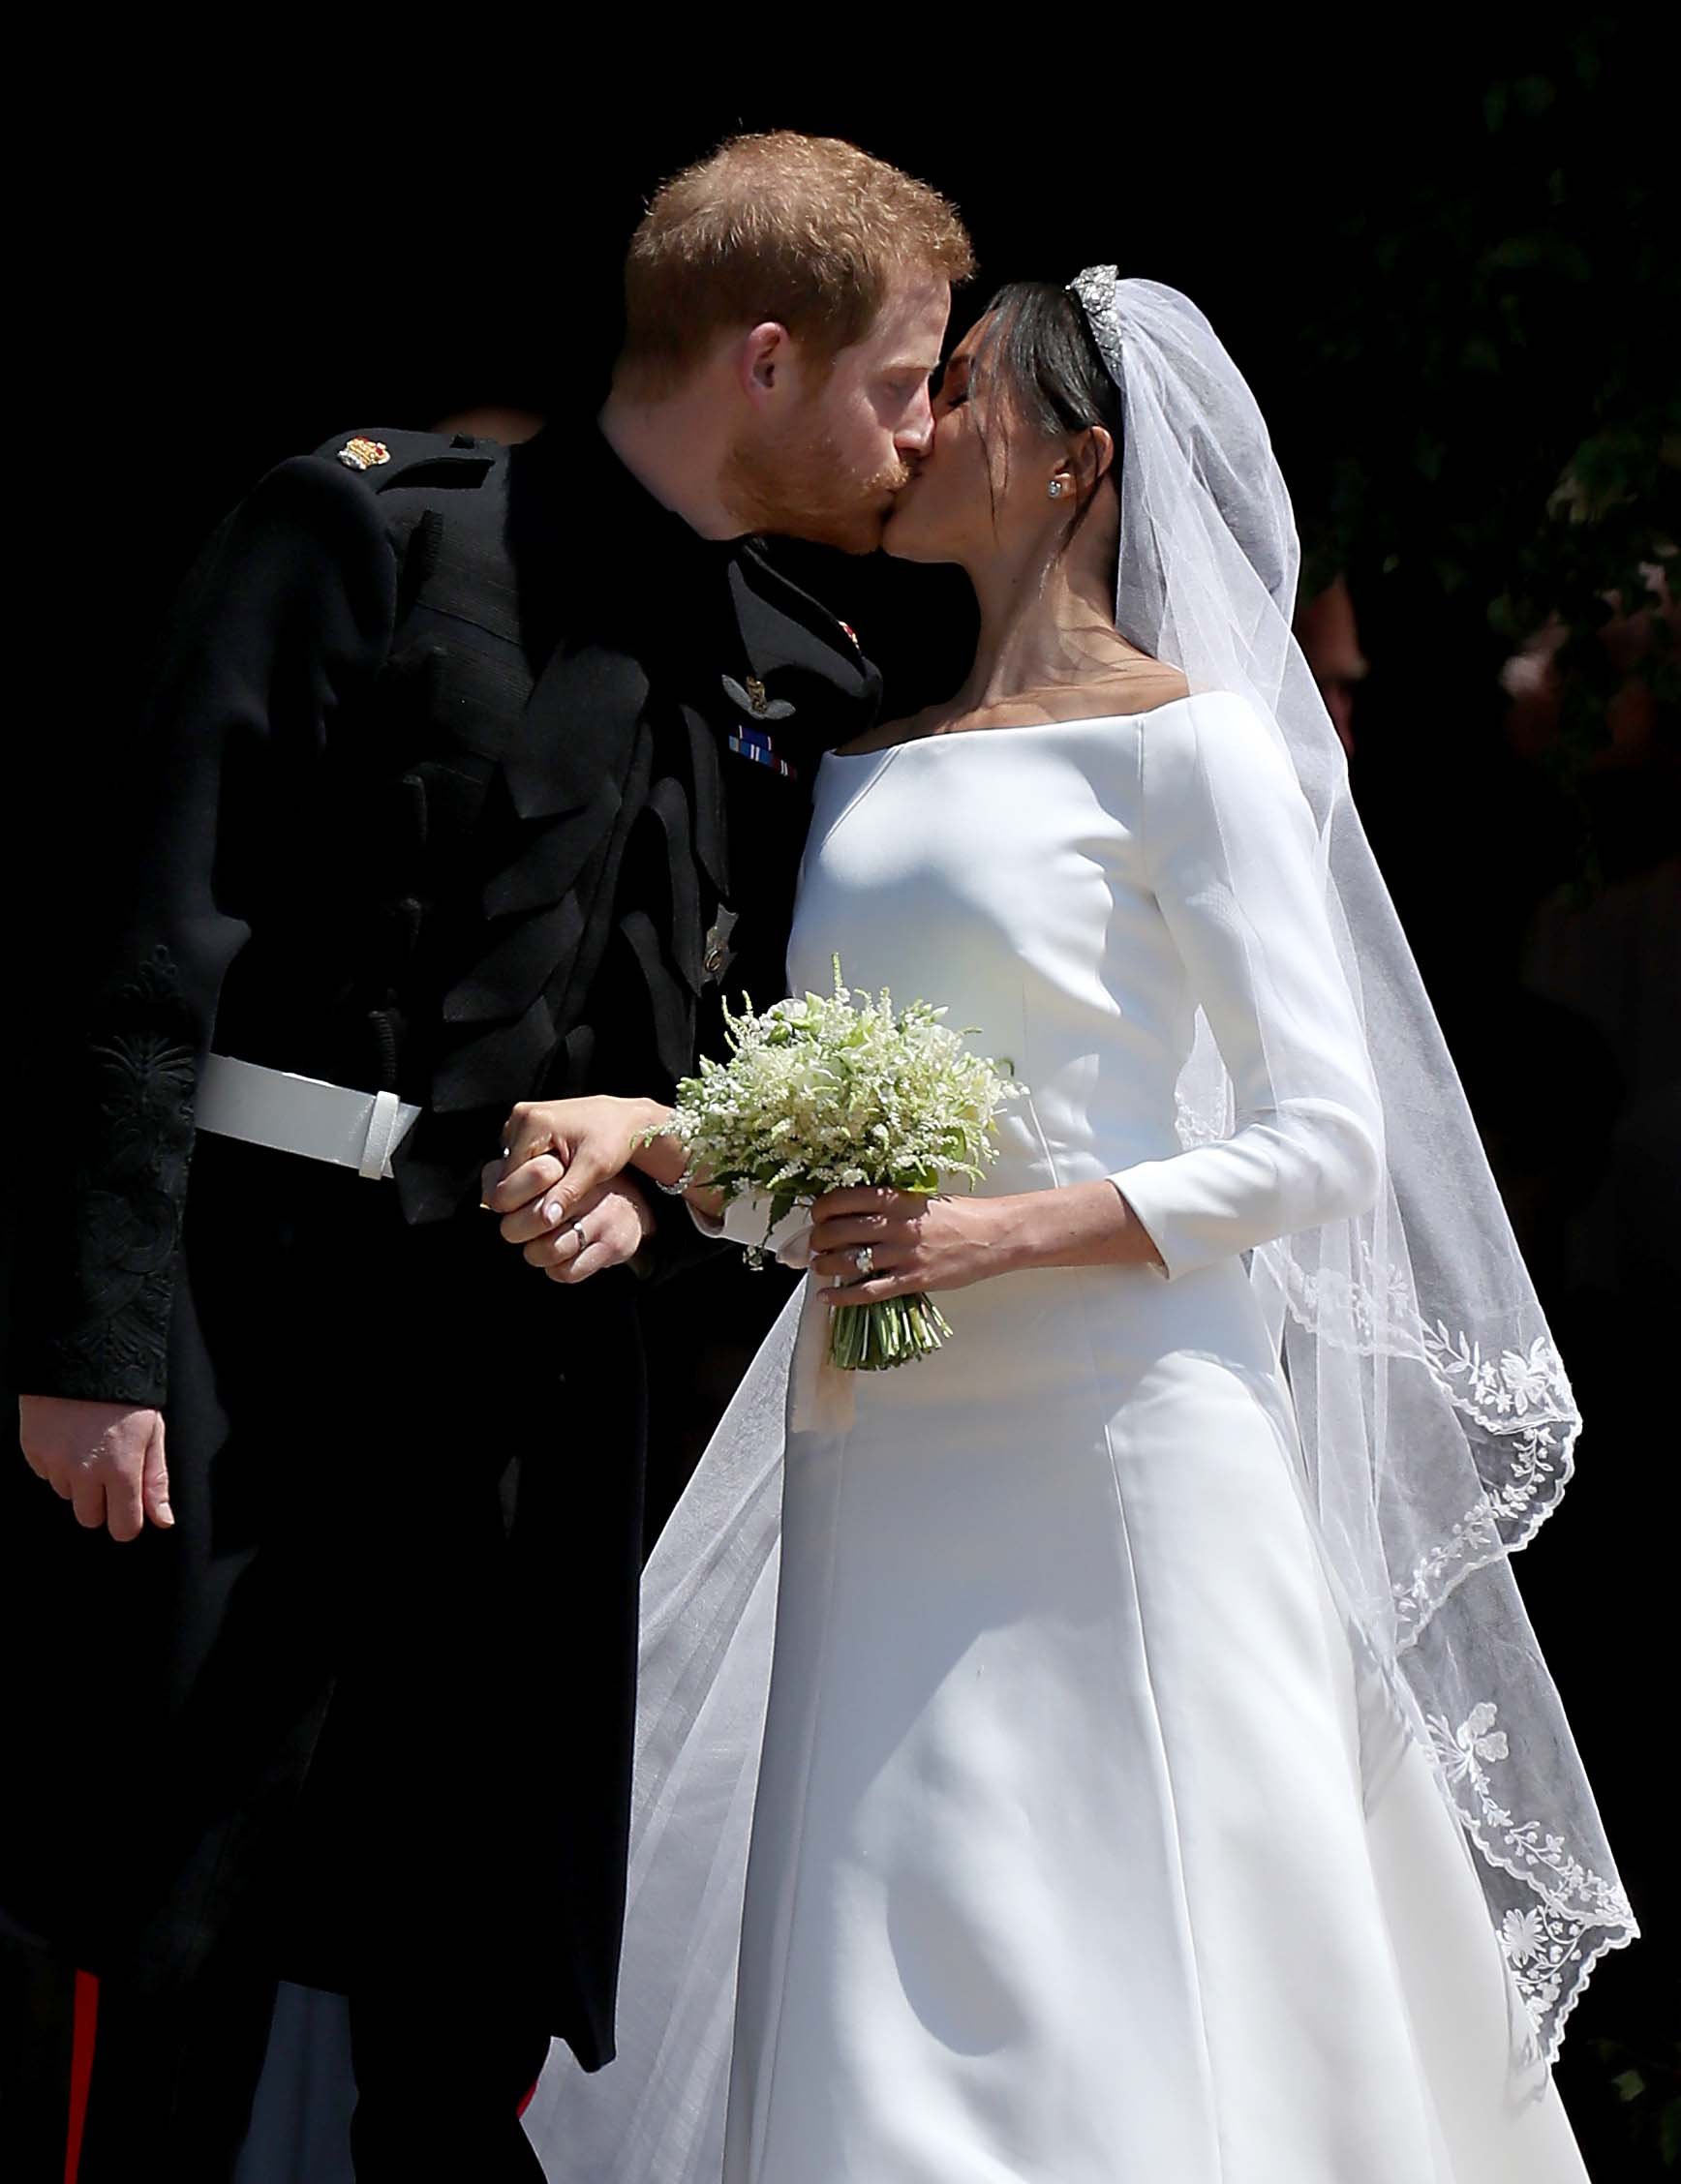 WINDSOR, UNITED KINGDOM - MAY 19:  Prince Harry, Duke of Sussex and The Duchess of Sussex share a kiss after their wedding at St George's Chapel at Windsor Castle on May 19, 2018 in Windsor, England. (Photo by Jane Barlow - WPA Pool/Getty Images)